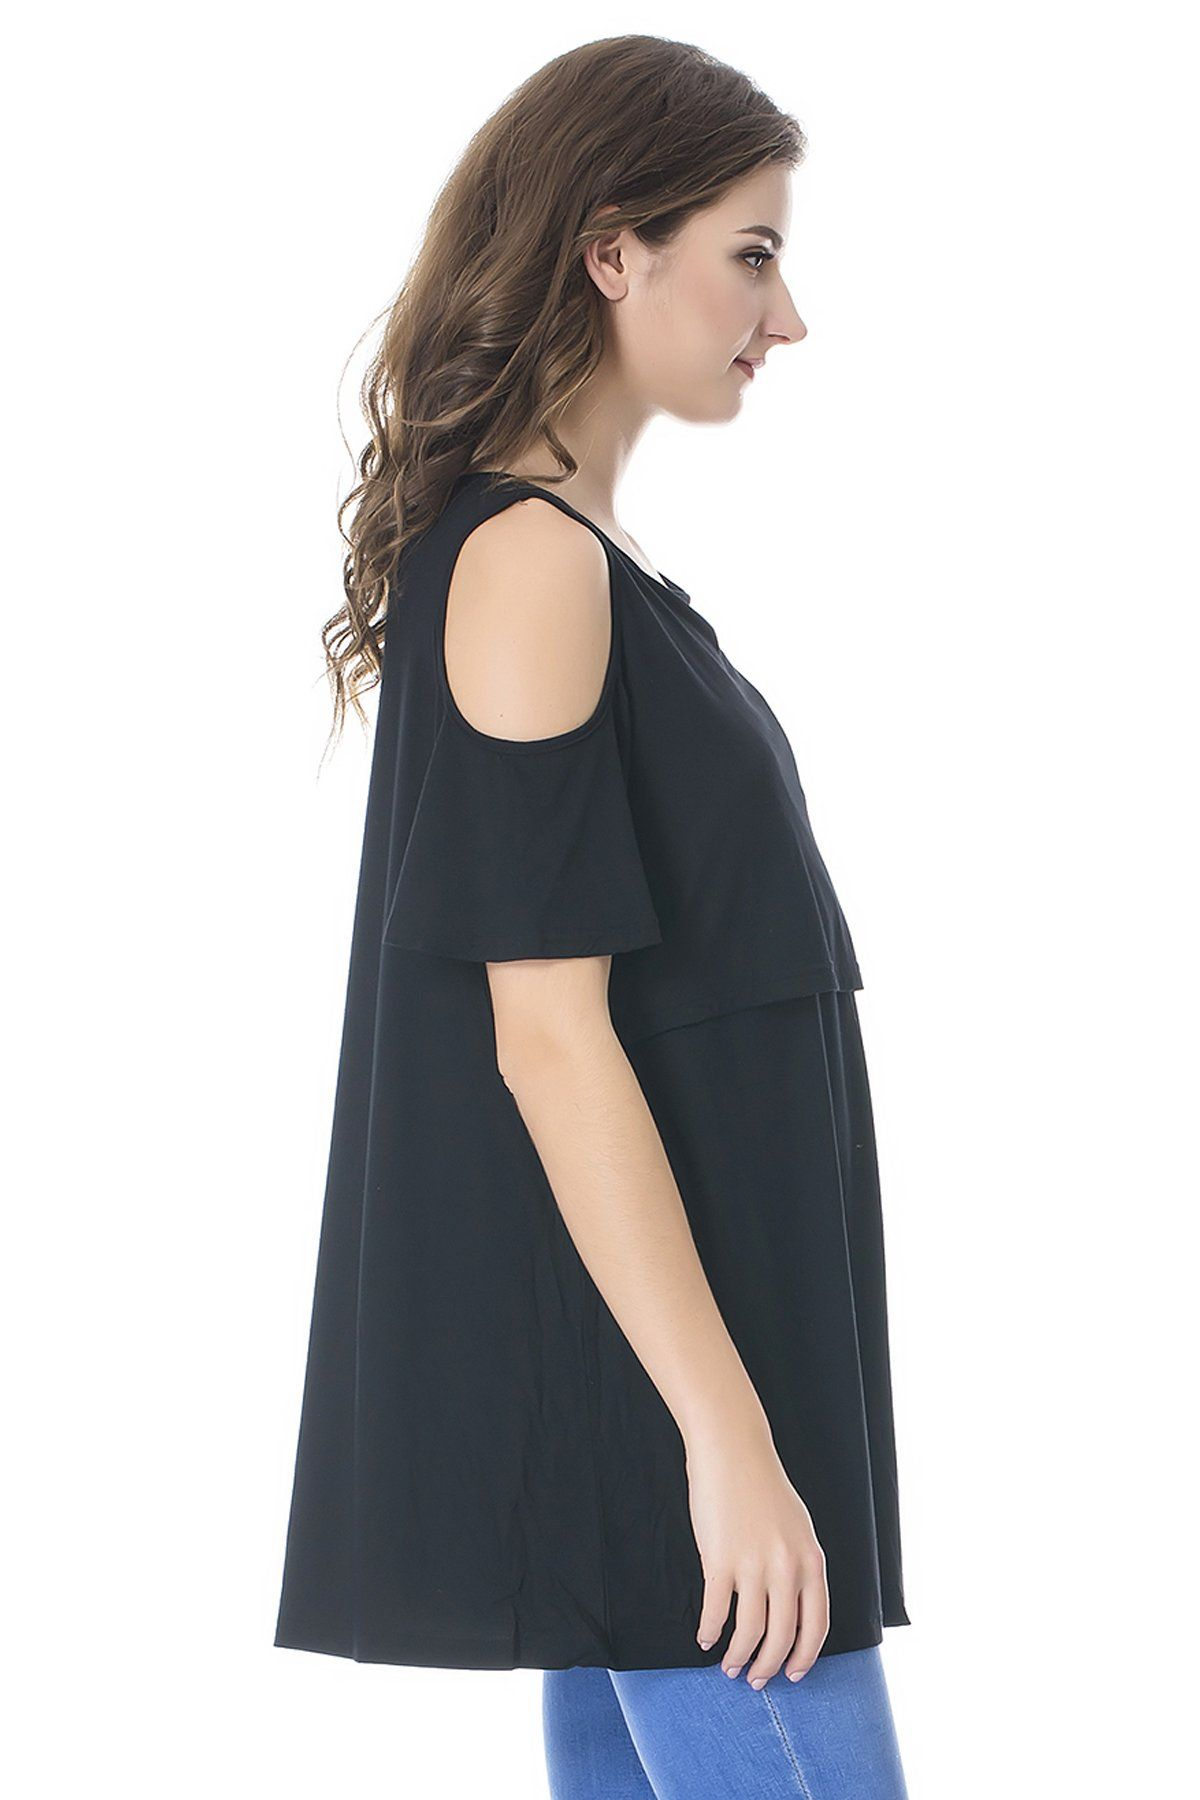 8b542e04b7d nursing tops - Bearsland Womens Maternity Cold Shoulder Nursing Tops Modal  Short Sleeve Breastfeeding Clothes -- Click image for more details.